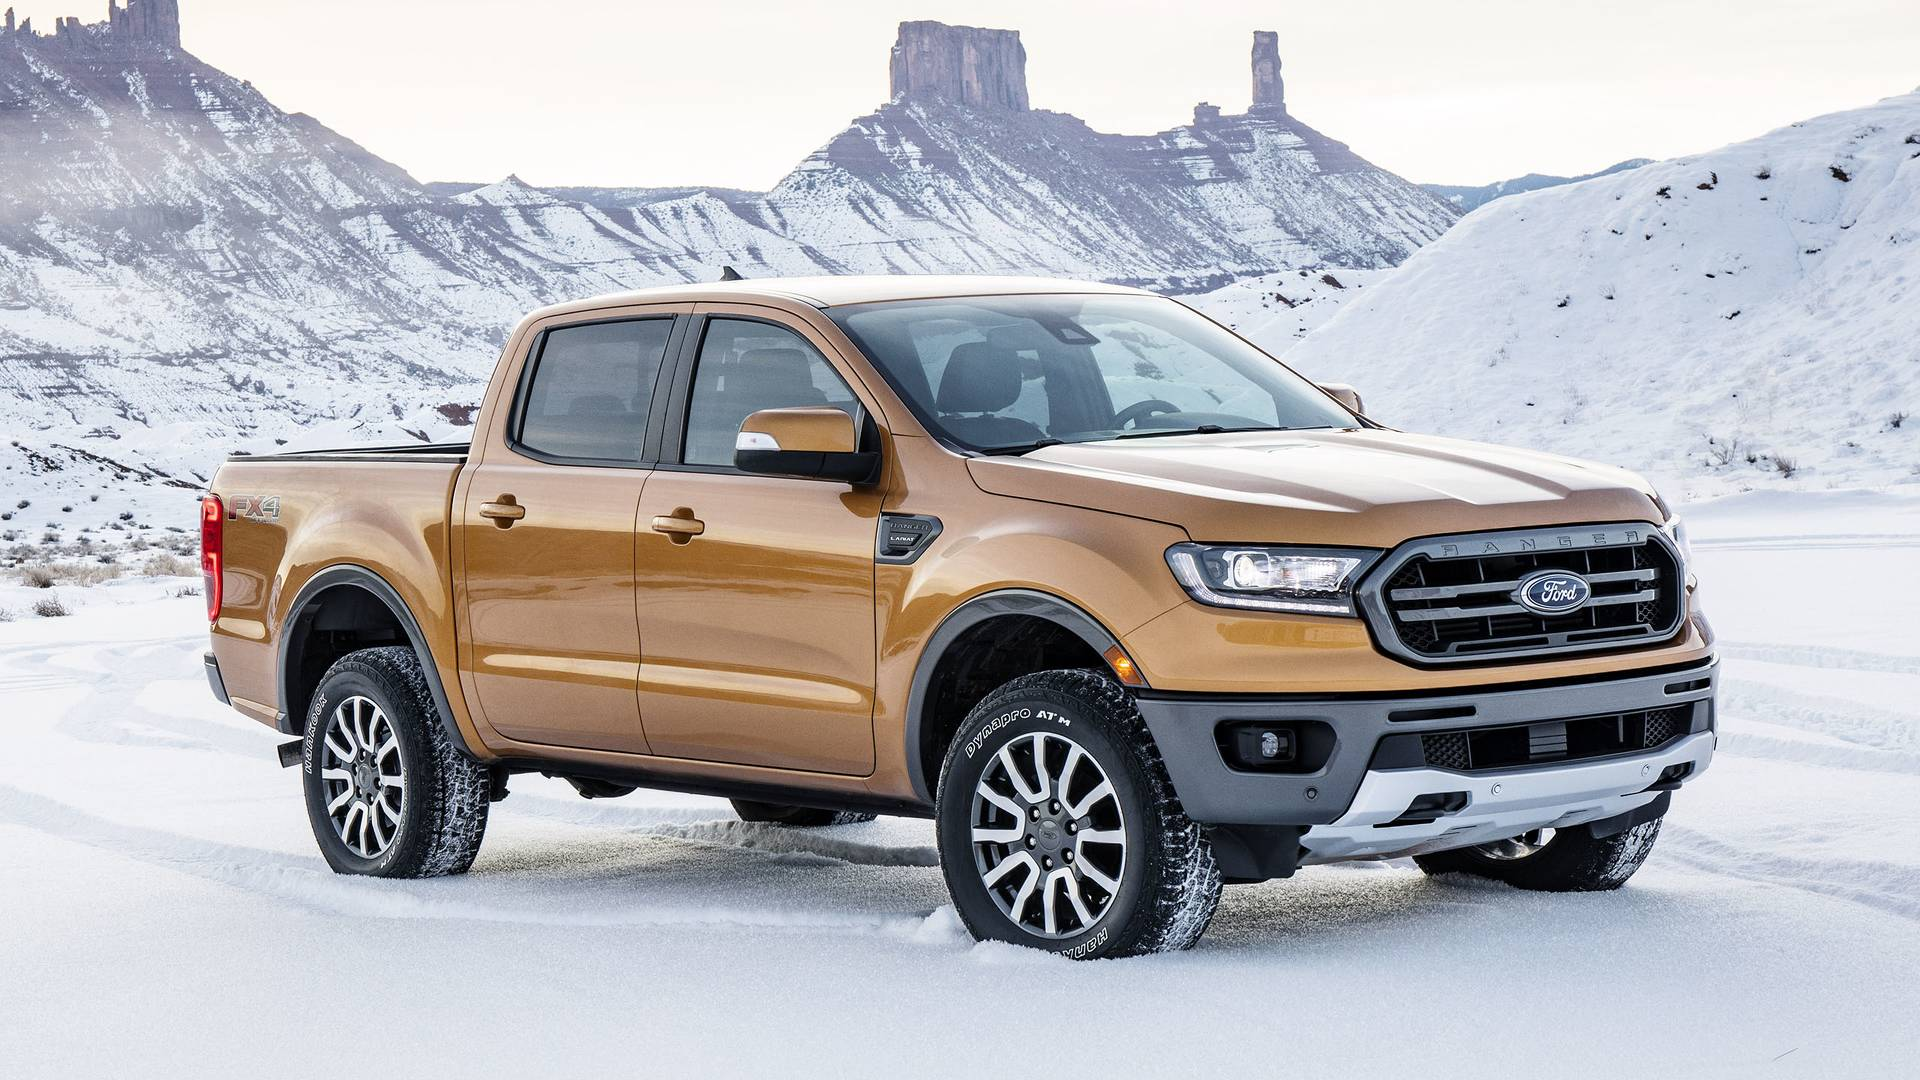 No, It's Not That Hard To Change The 2019 Ford Ranger's Oil